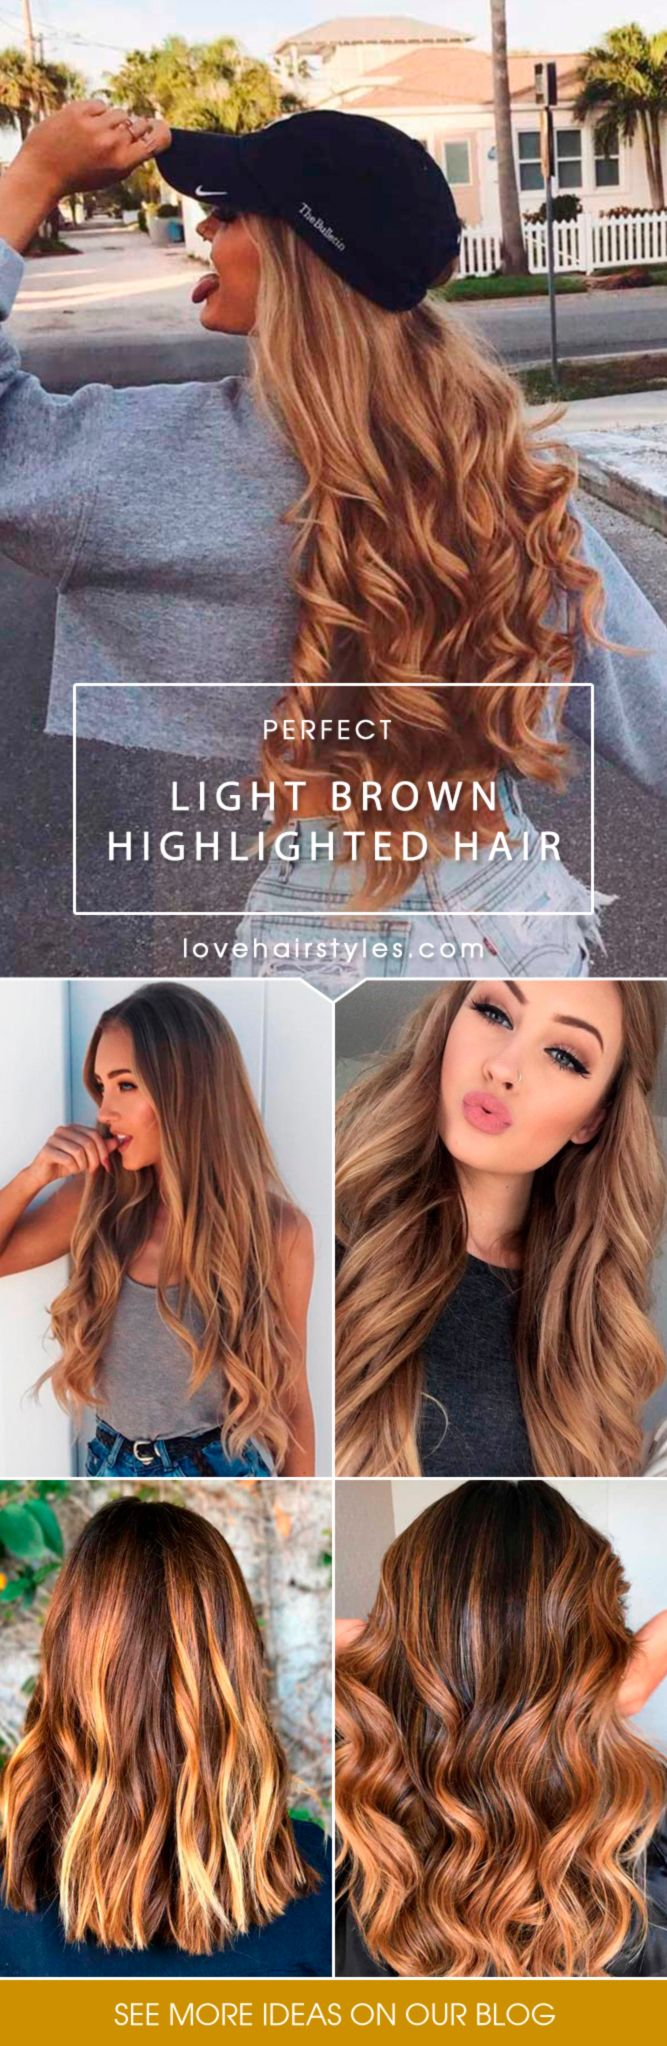 Best 25+ Light brown hair colors ideas on Pinterest